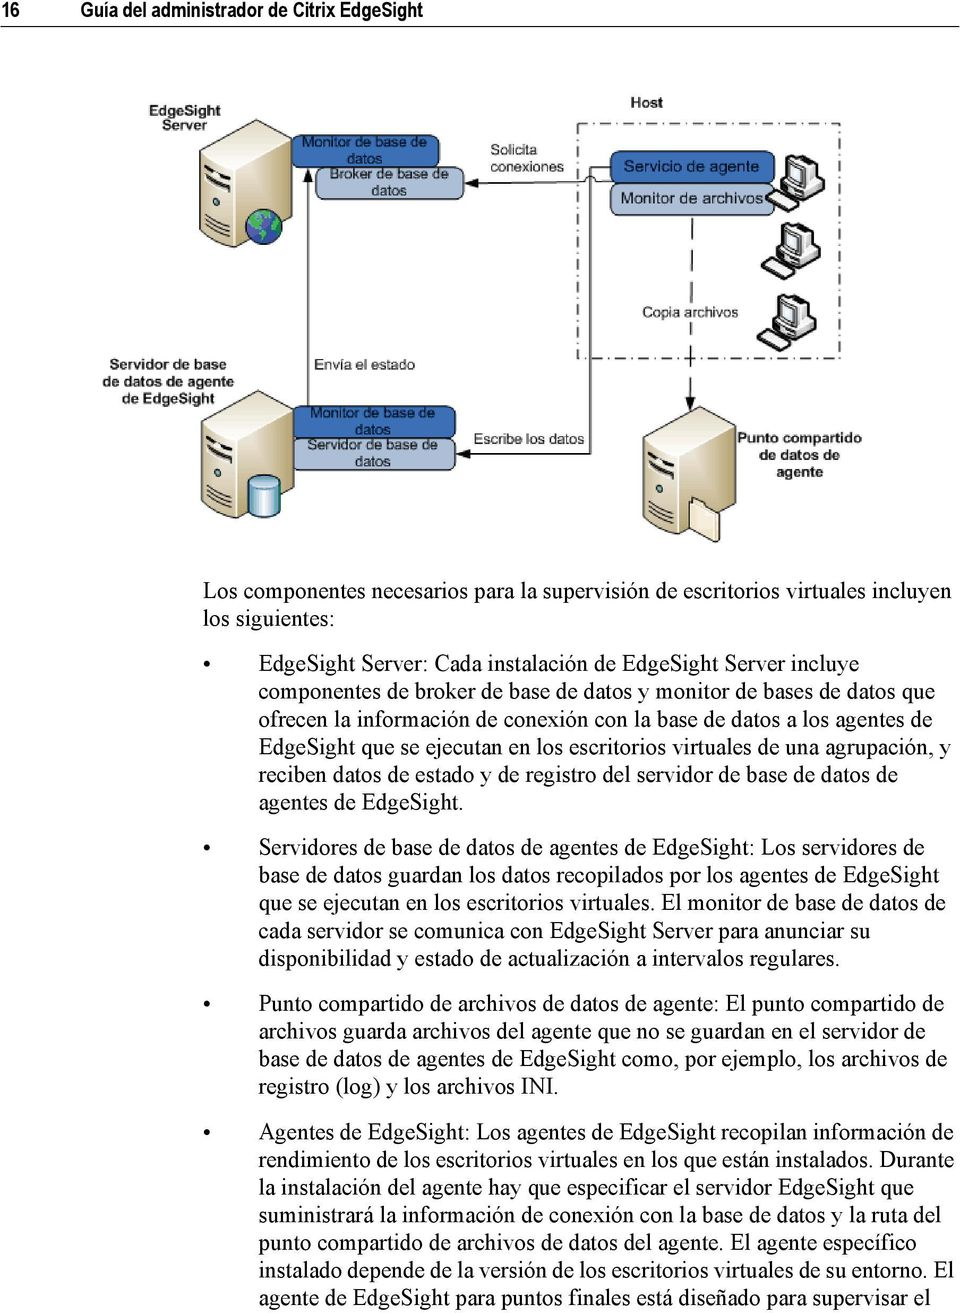 virtuales de una agrupación, y reciben datos de estado y de registro del servidor de base de datos de agentes de EdgeSight.